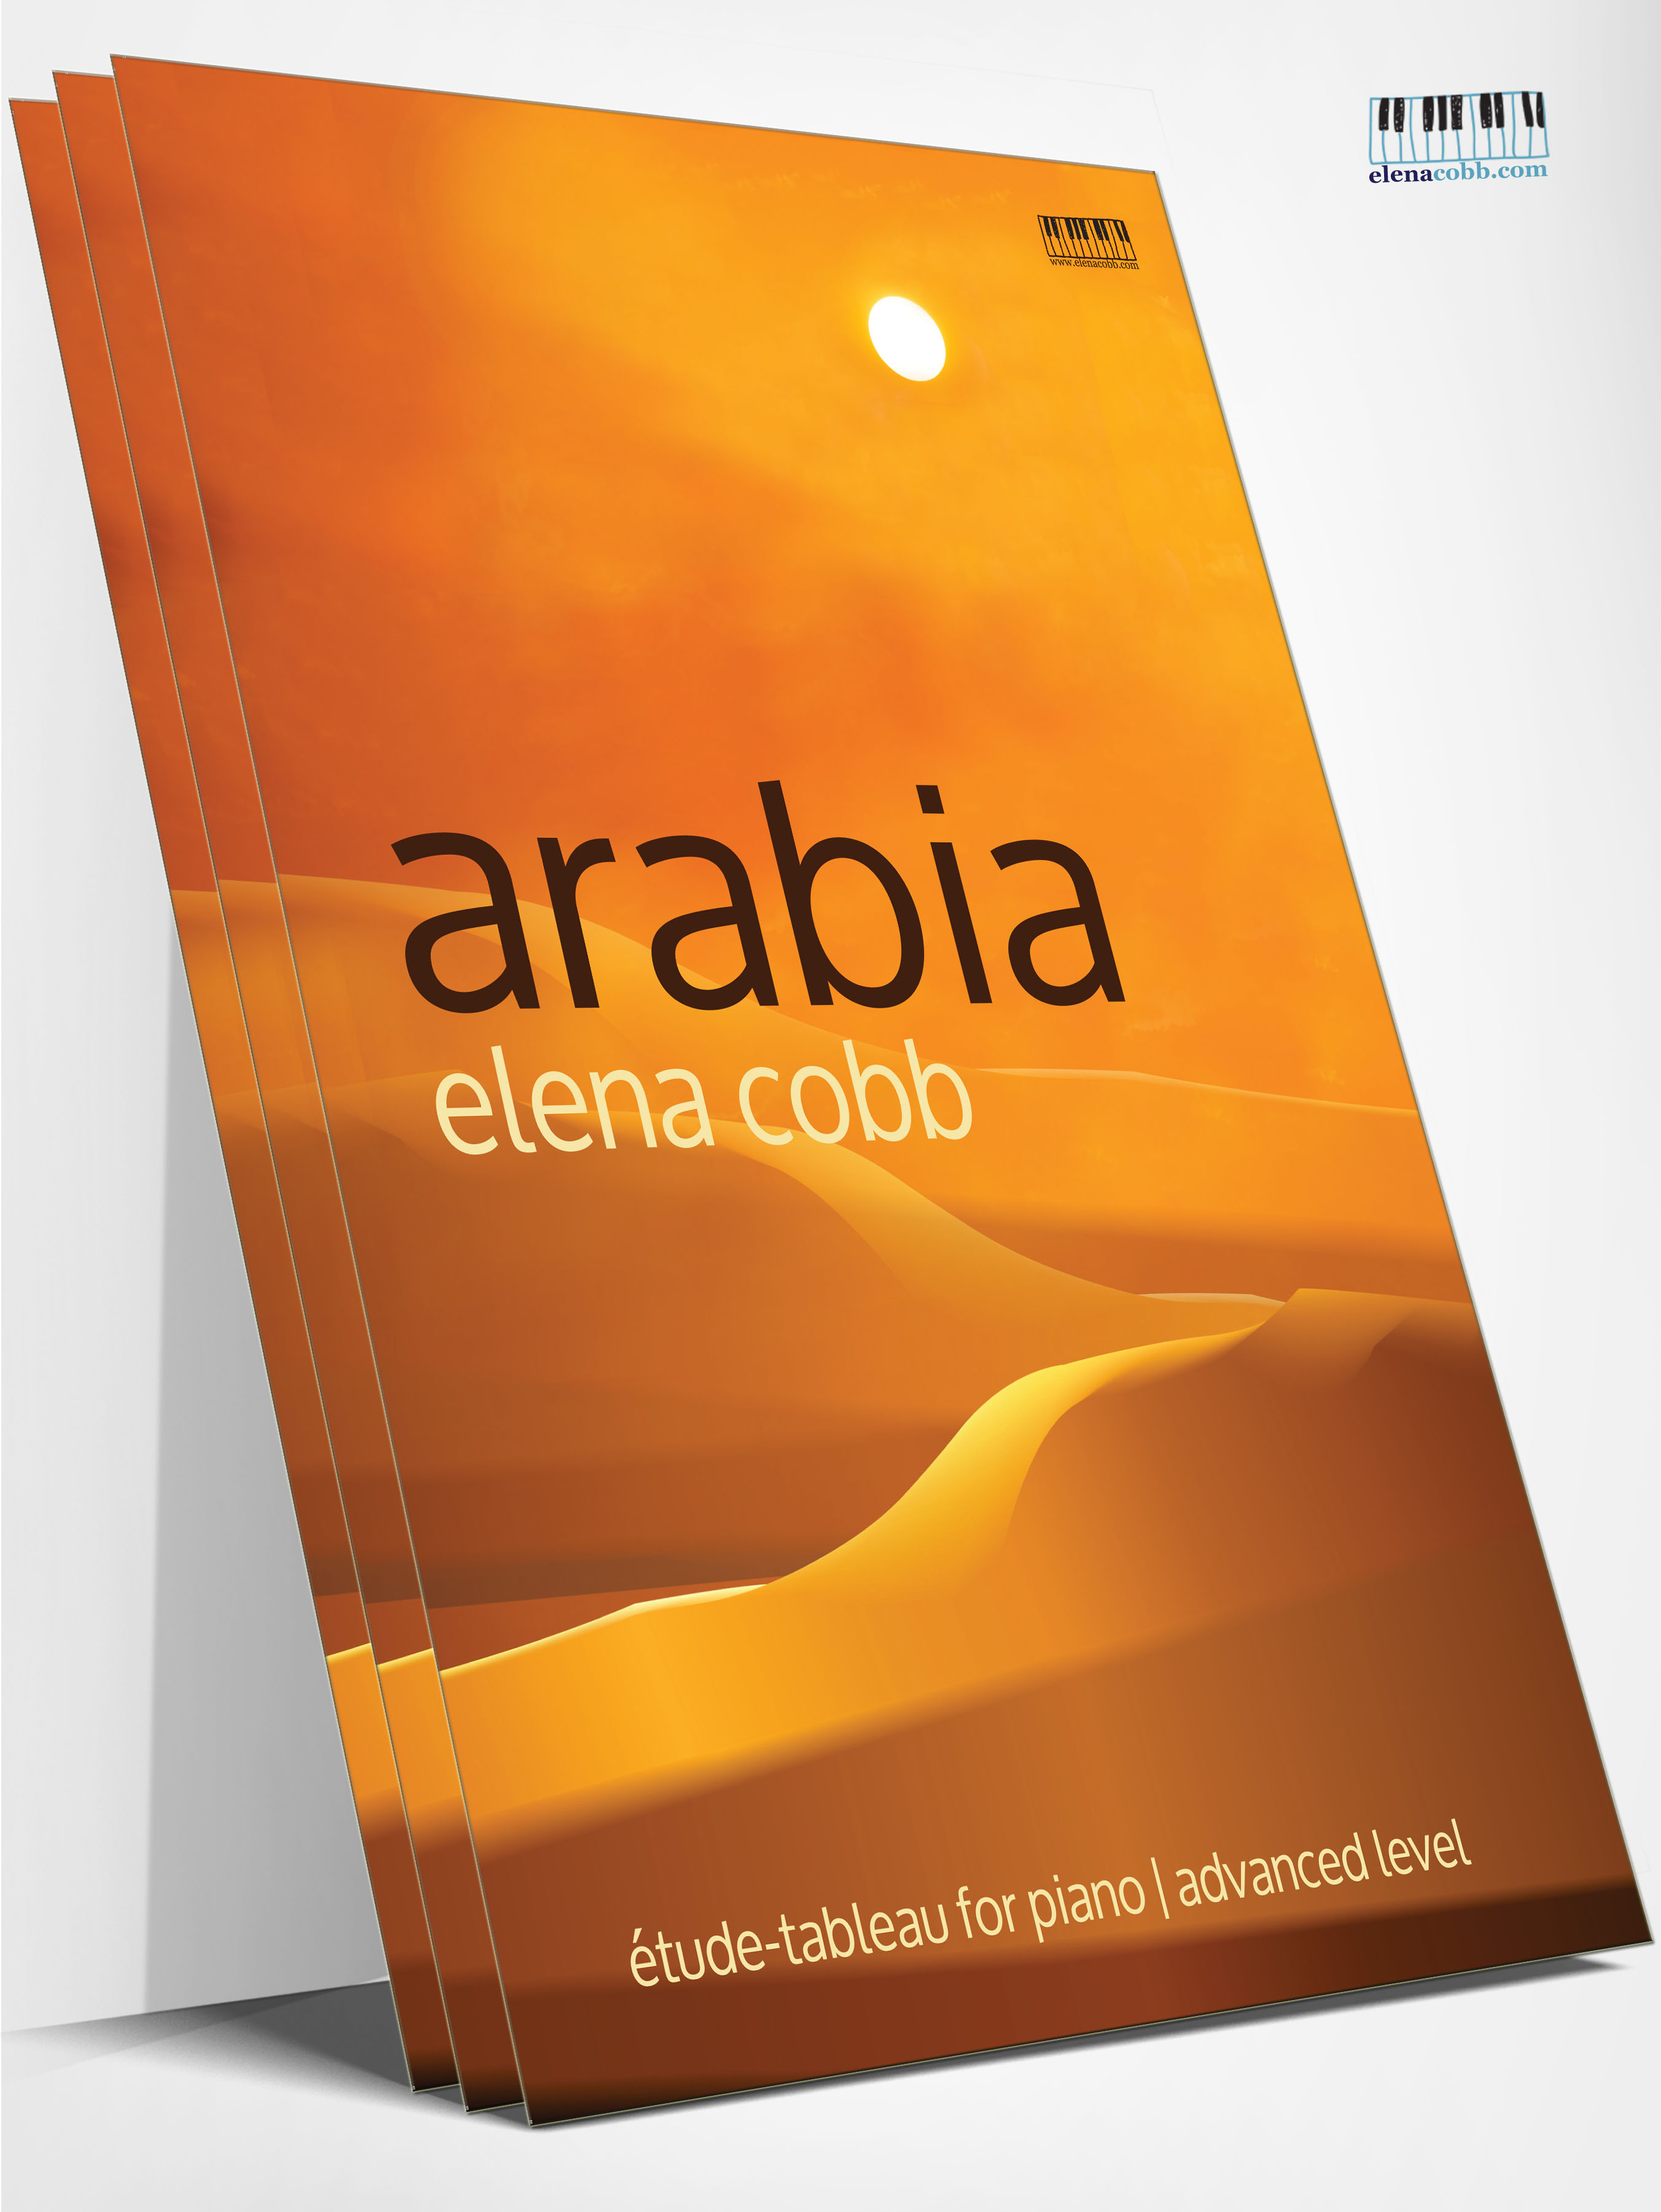 Arabia tudes tableaux for piano solo by elena cobb arabia tude tableau baditri Images